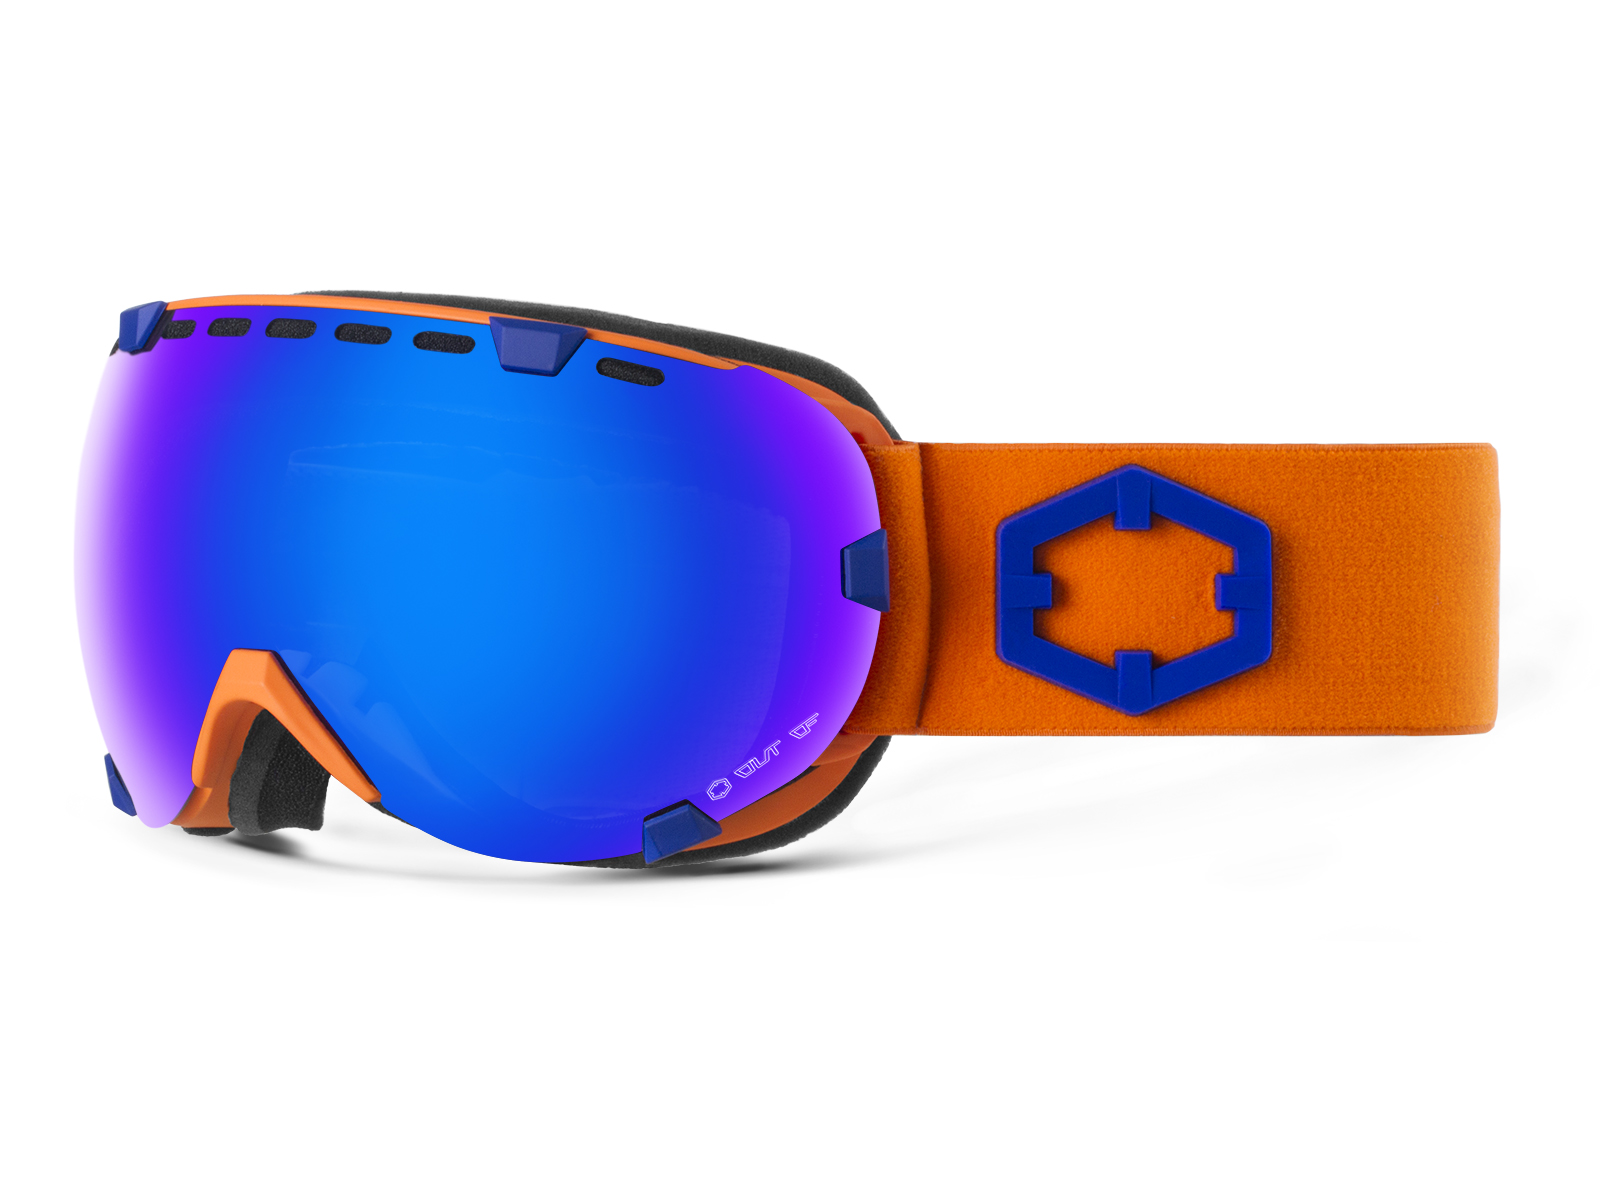 EYES BLUE ORANGE BLUE MCI GOGGLE